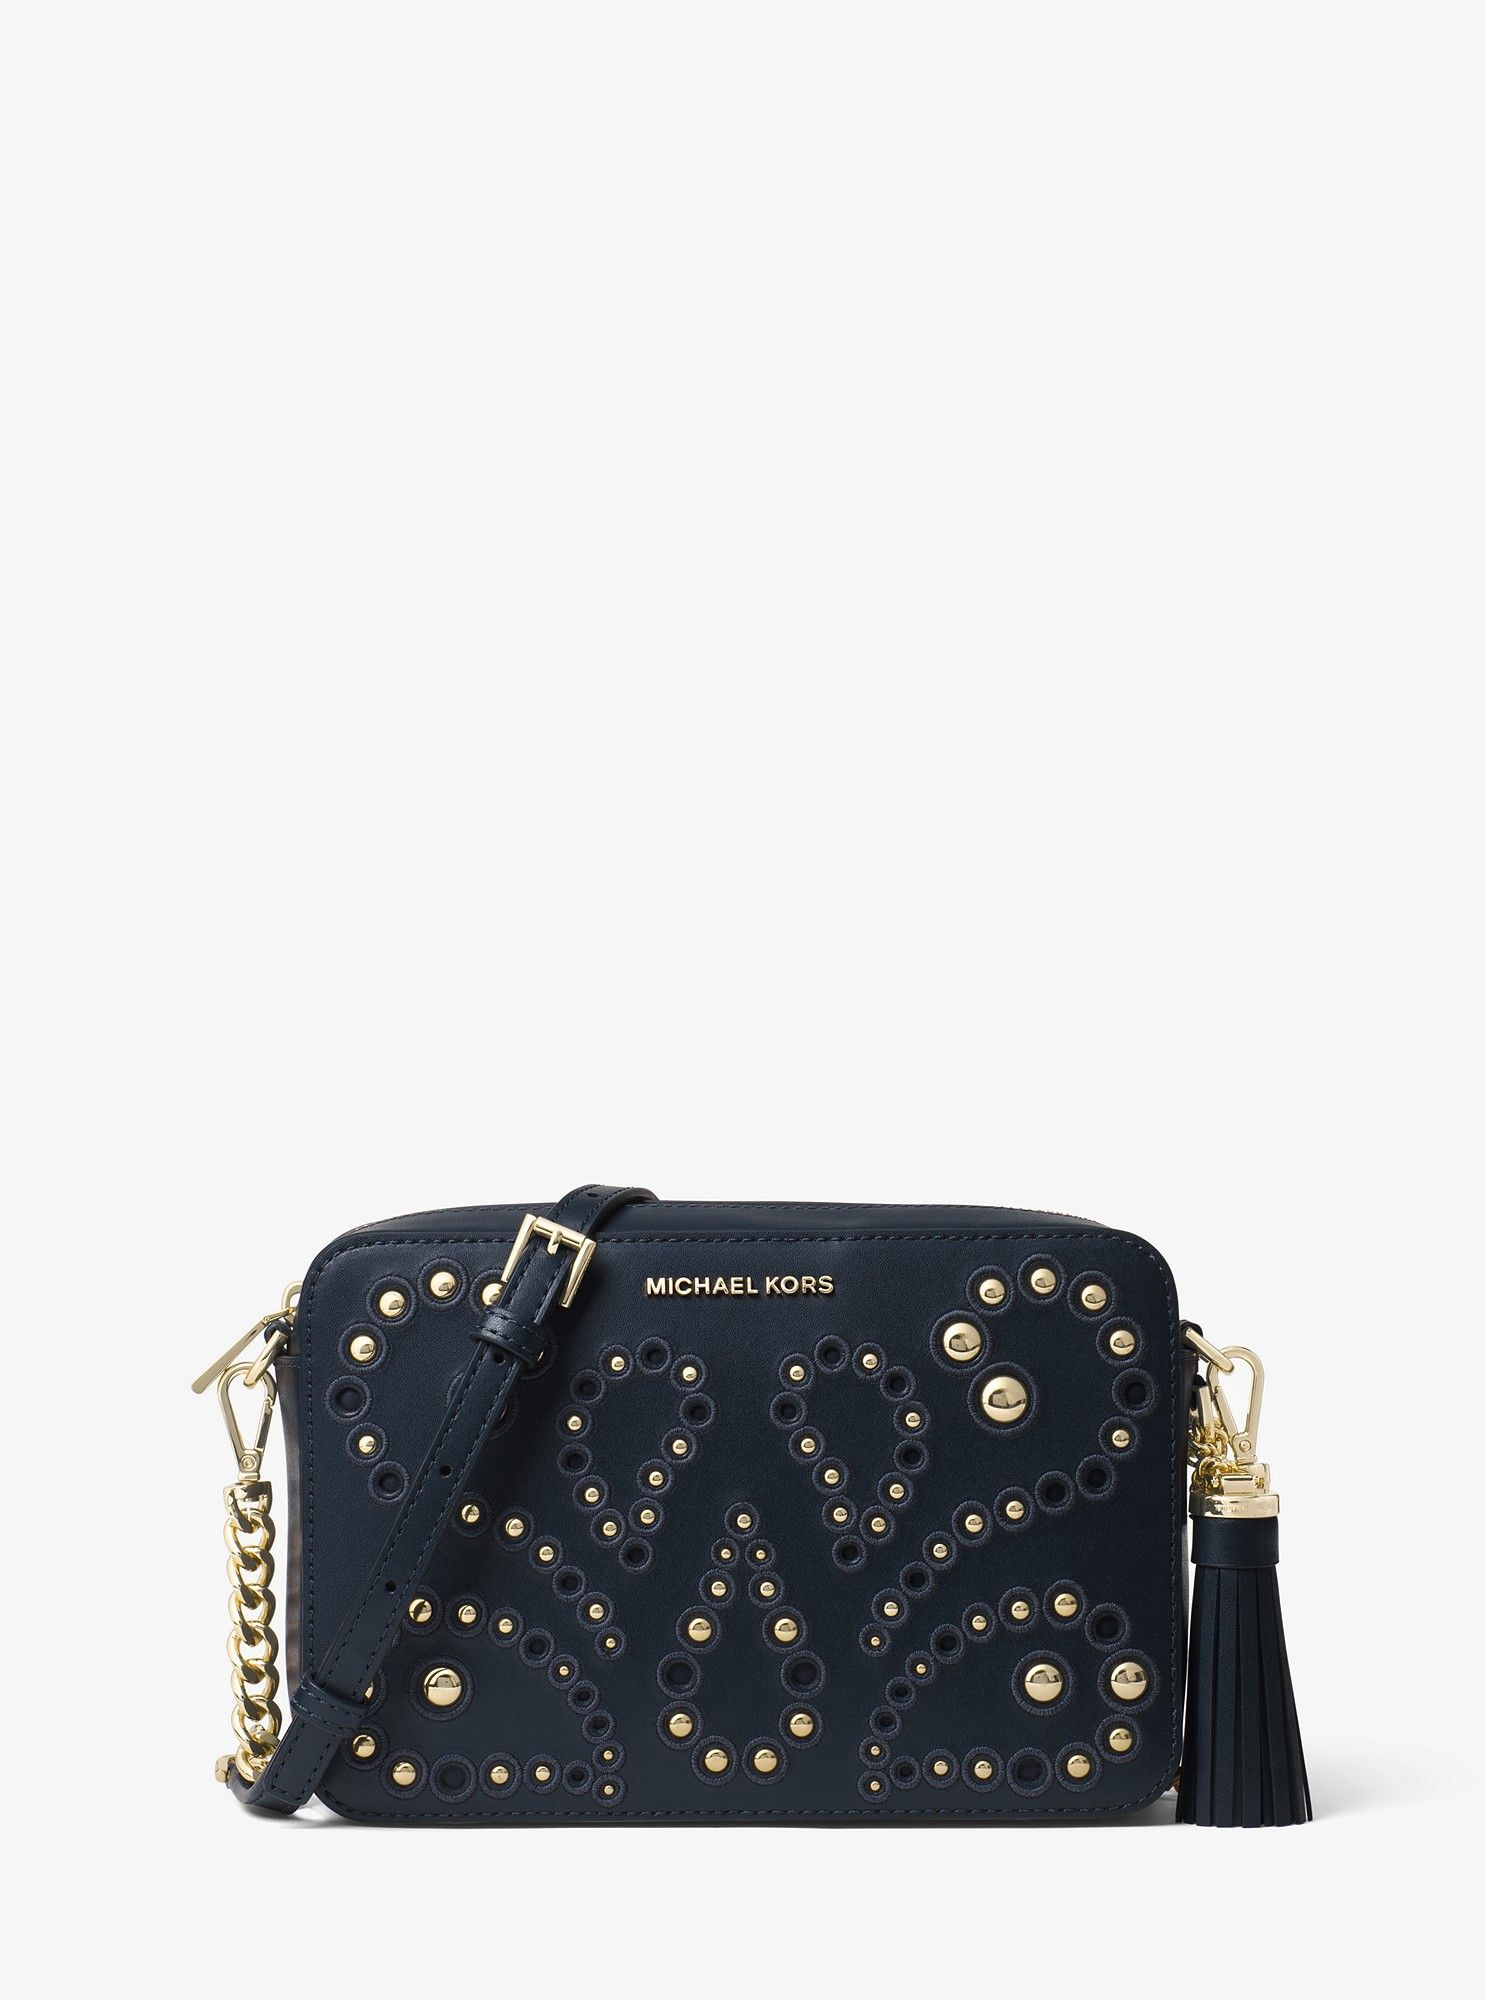 850d9a69dd91 Ginny Medium Embellished Leather Crossbody by Michael Kors in 2018 ...